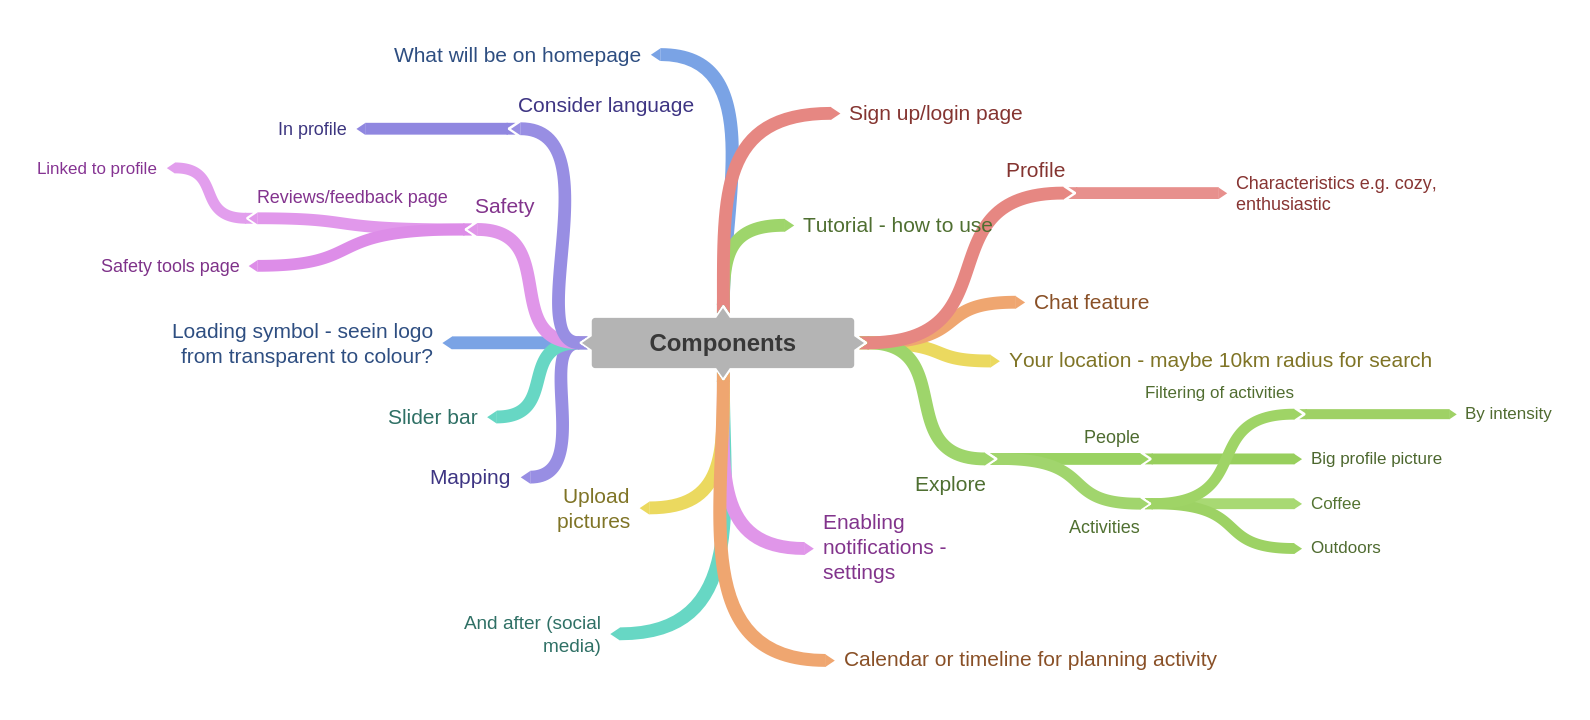 Brainstorming components of the app to determine what features to have.